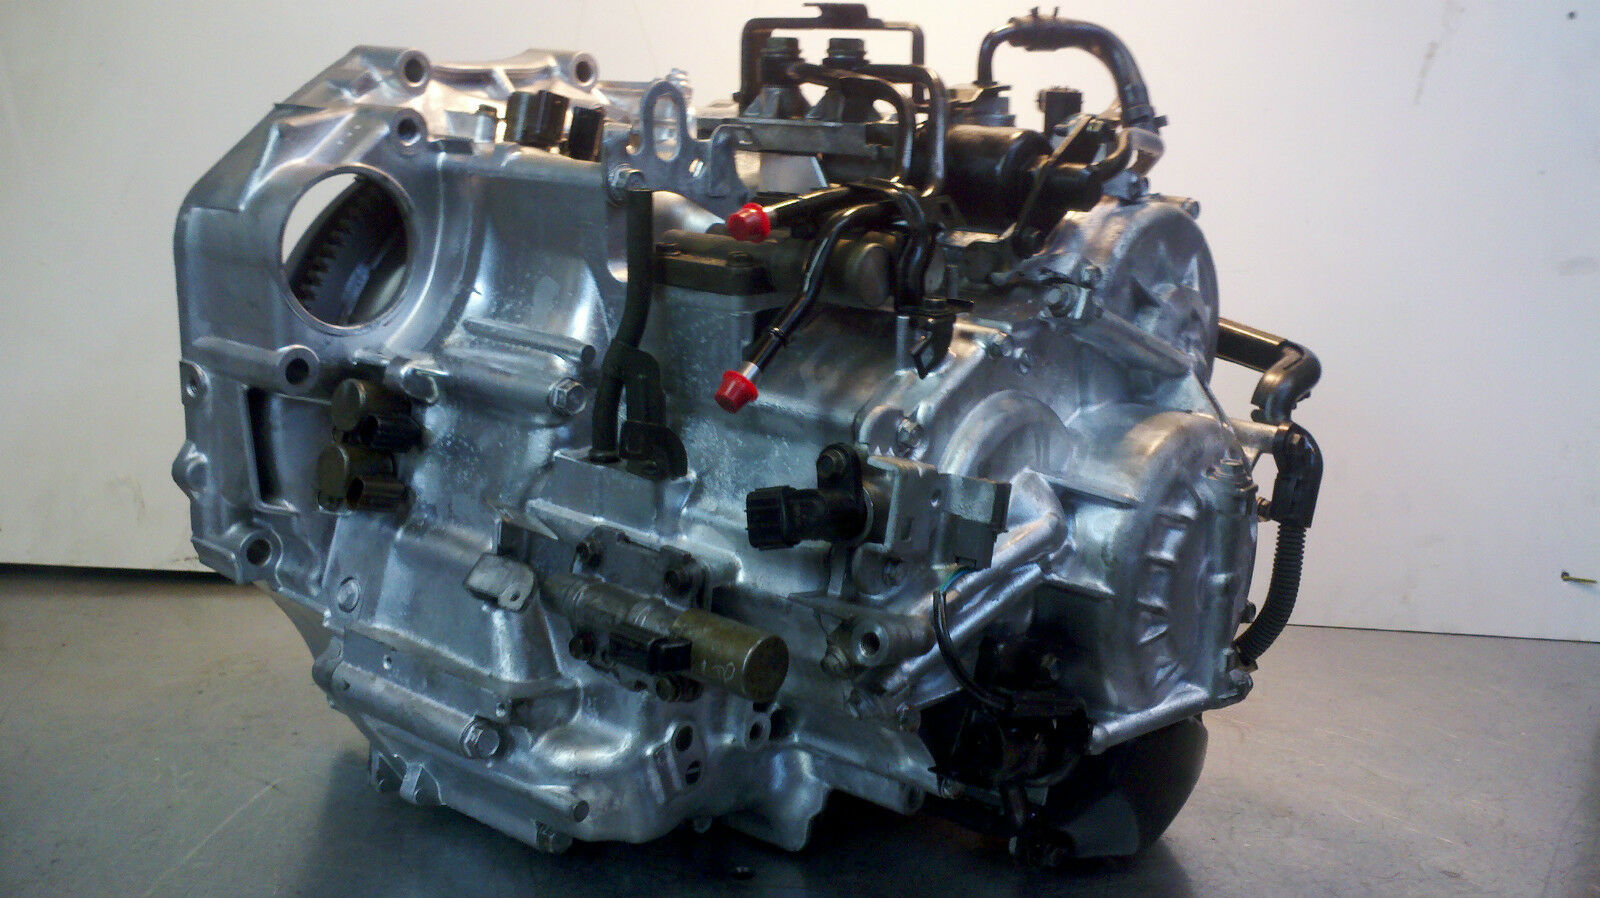 2003 2005 Honda Accord 3.0L V6 Transmission W/ 2 YEAR WARRANTY 1 Of 3 2003 2005  Honda Accord 3.0L V6 Transmission ...